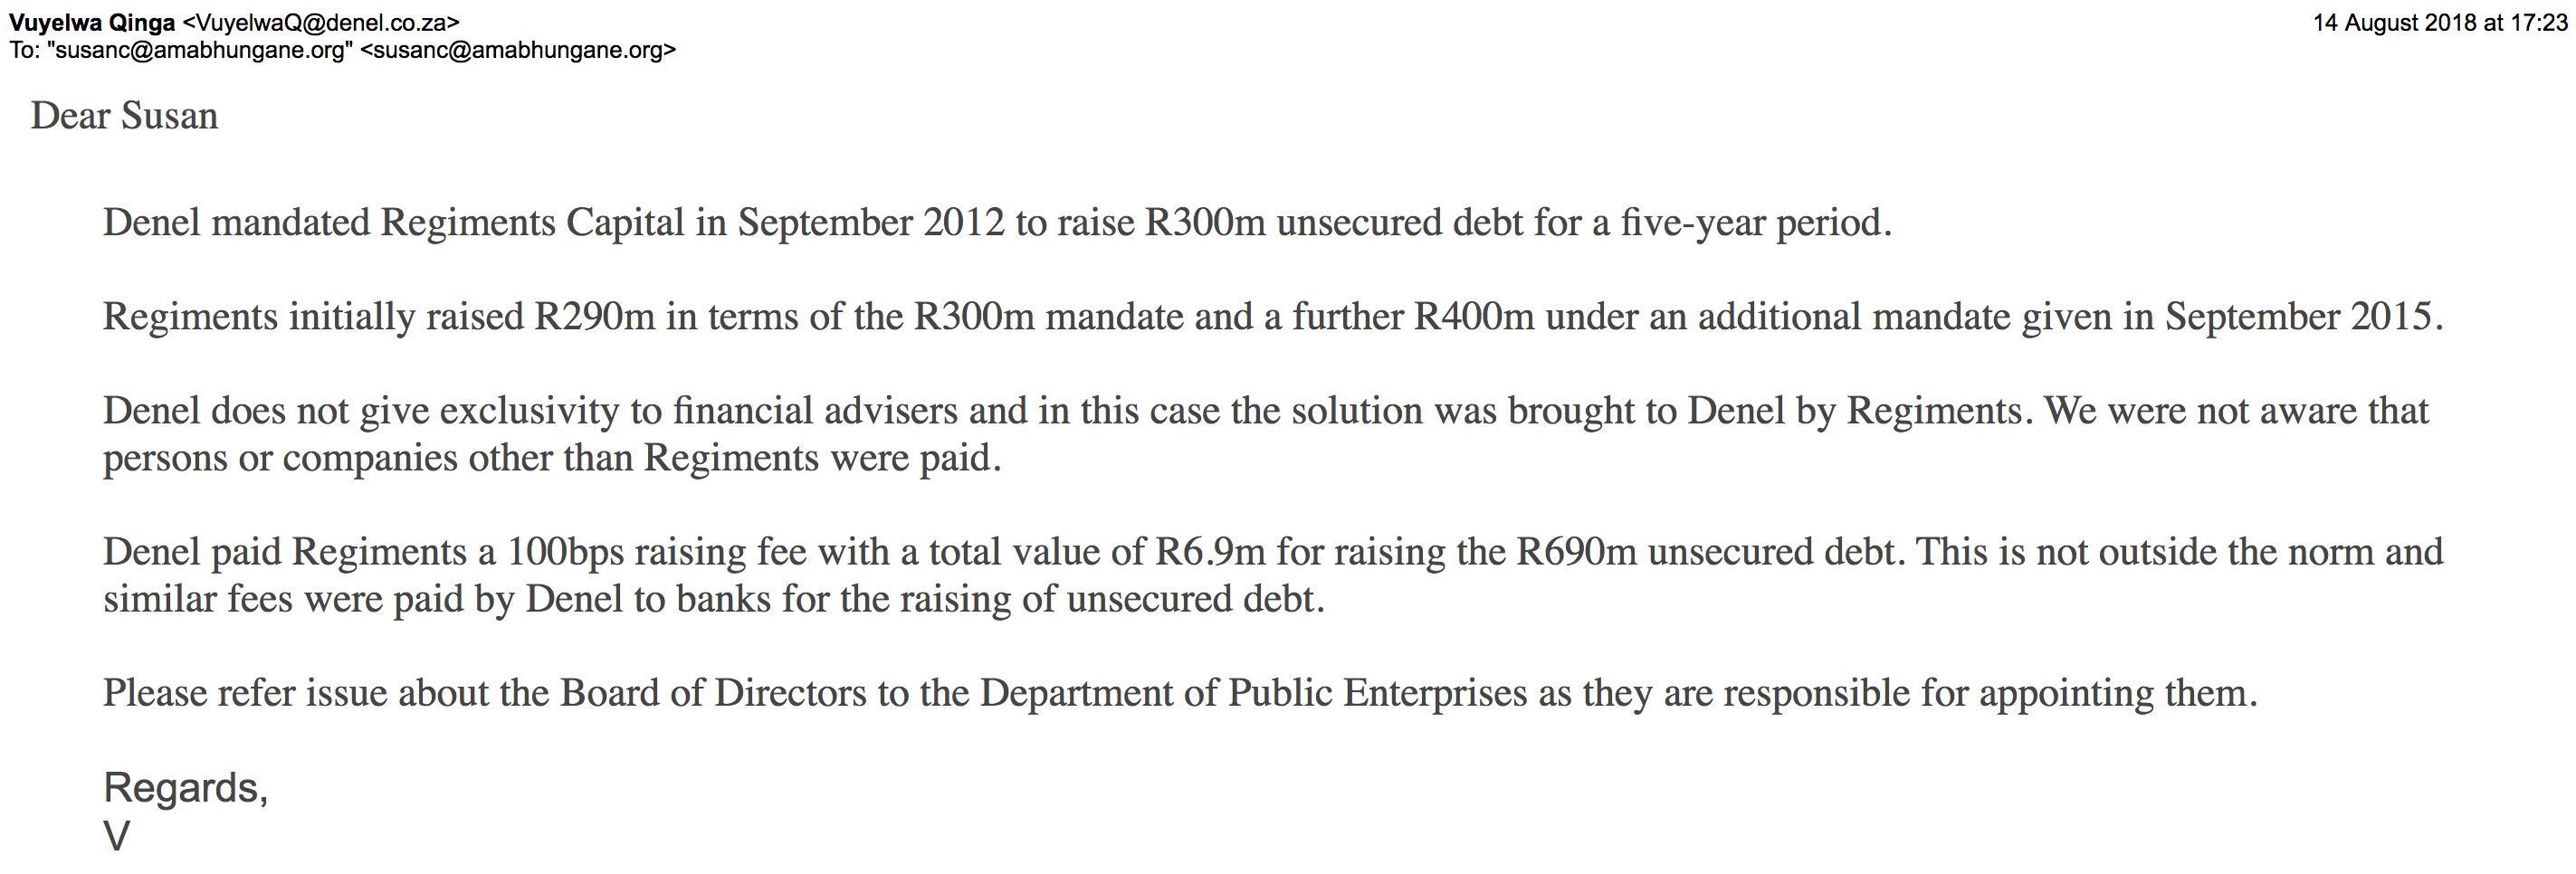 4. Gupta-owned company could be awarded social grants contract